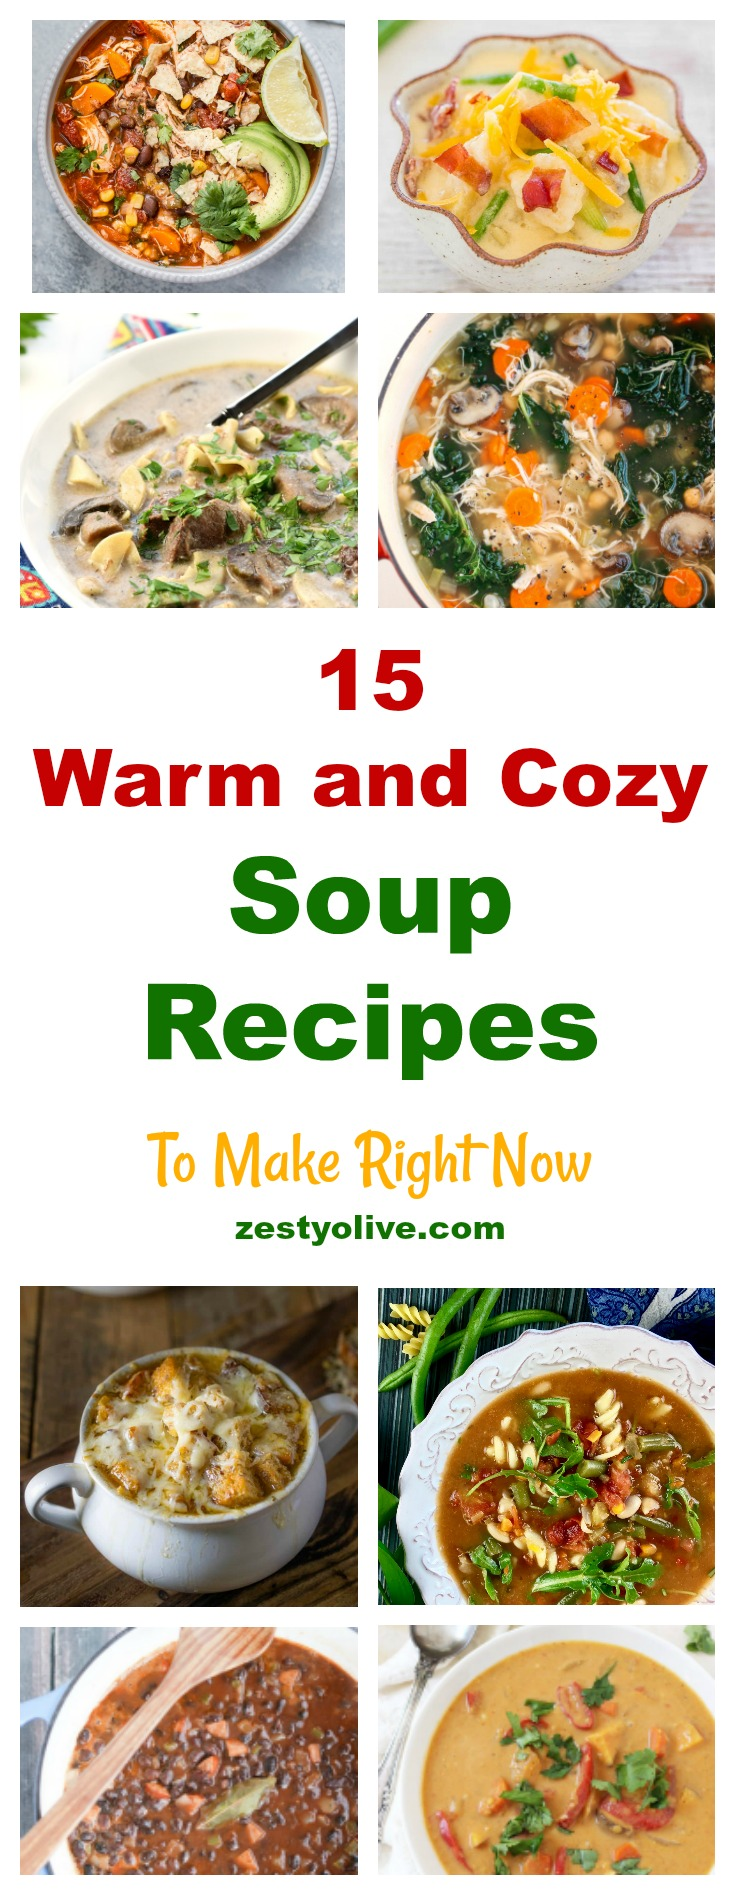 15 Warm and Cozy Soup Recipes To Make Right Now: these homemade soup recipes are perfect for fall and winter and beyond!